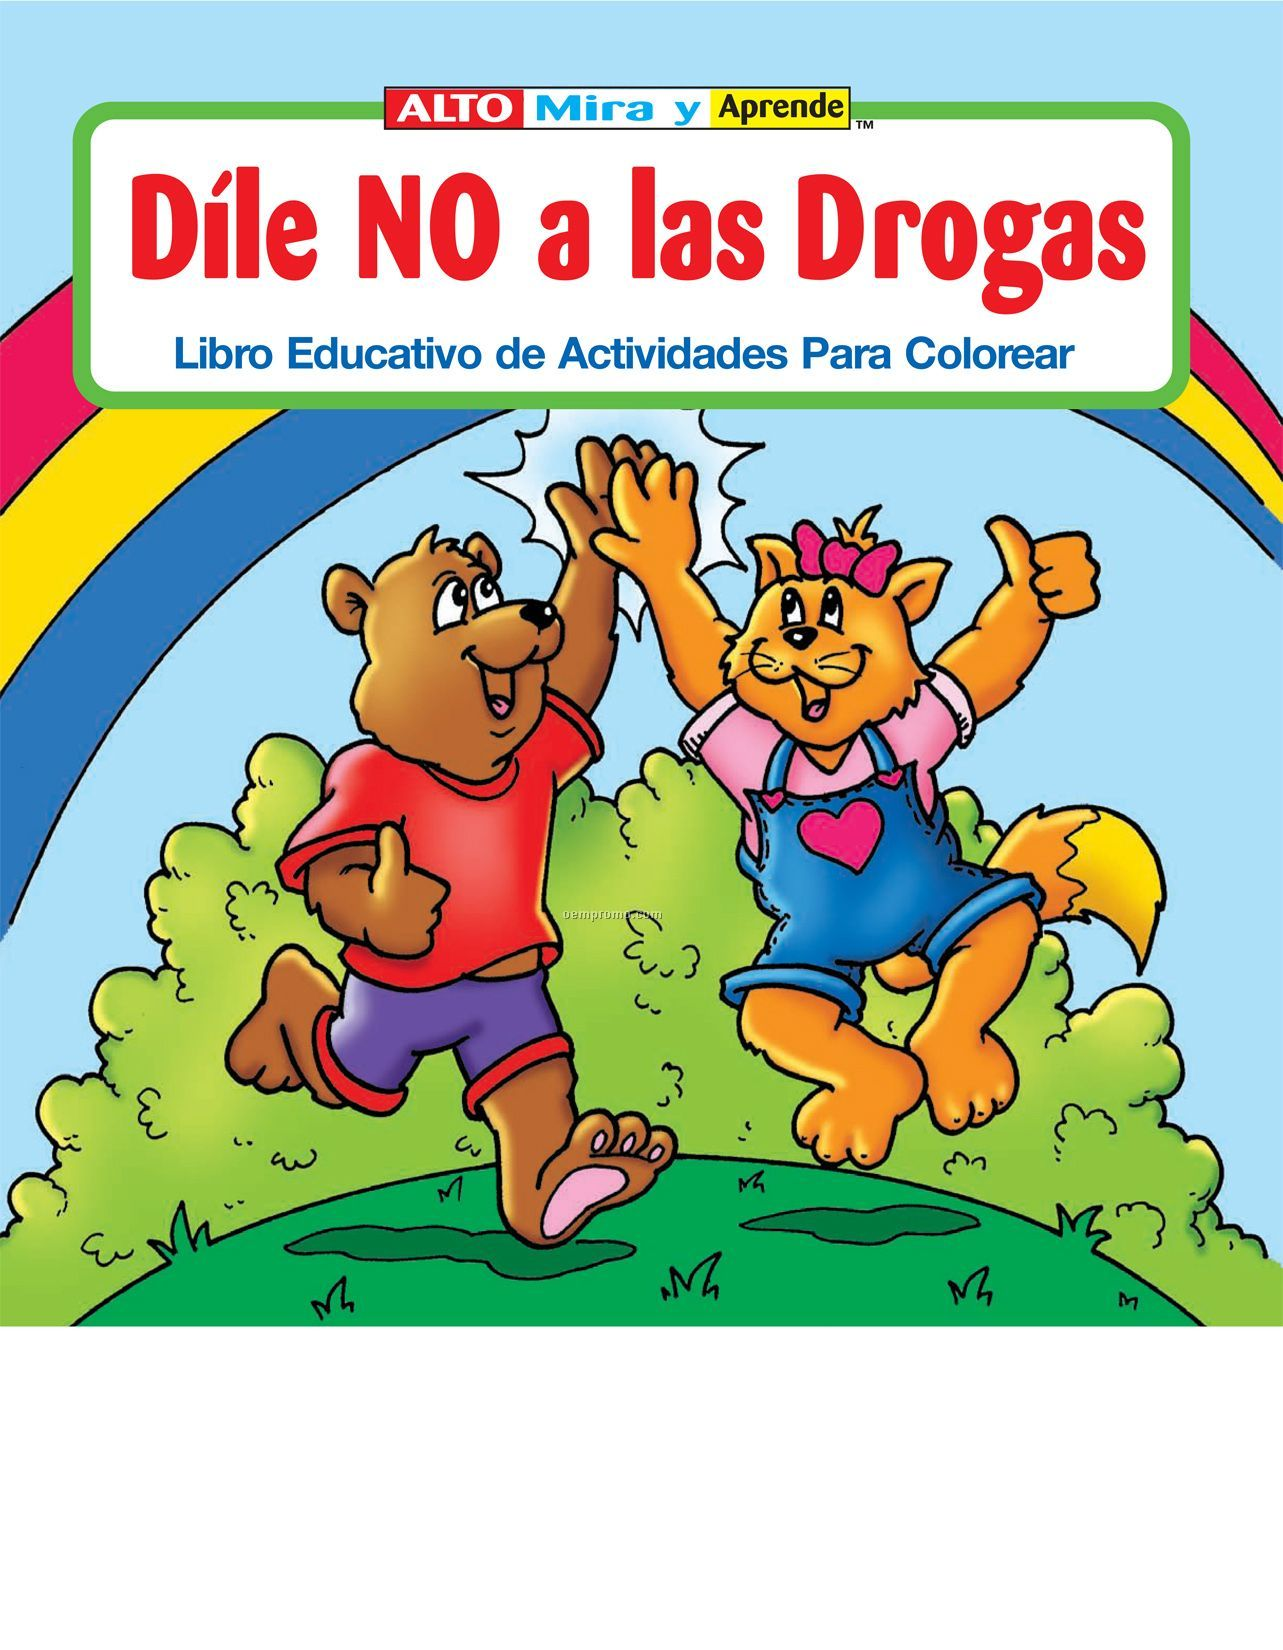 Say No To Drugs Coloring Pages #3